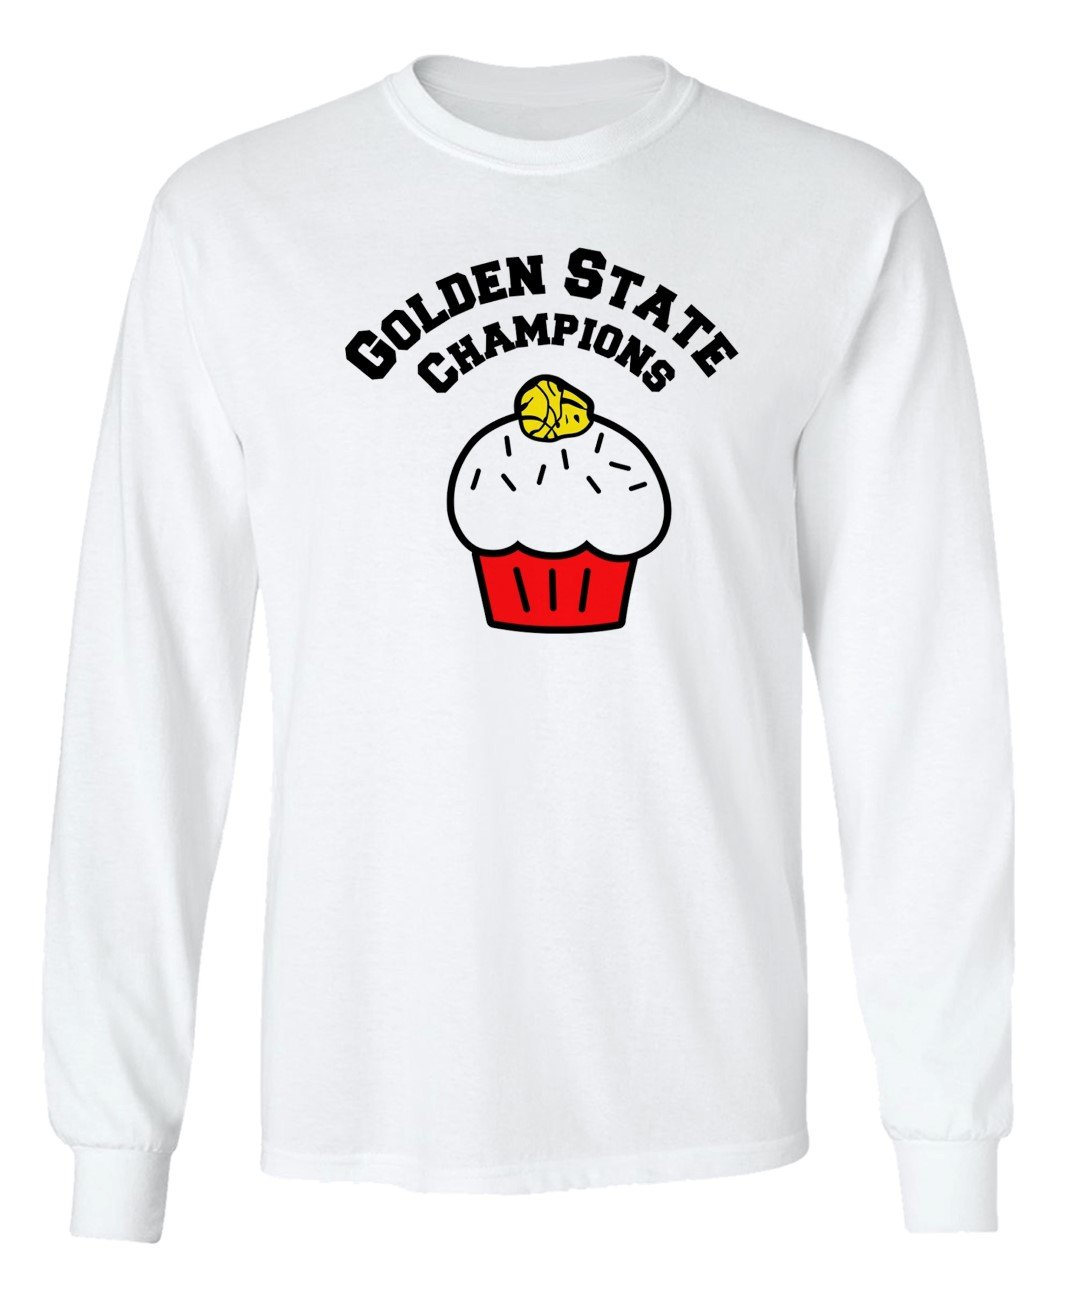 Warriors Cupcake With A Ring On Top Golden State Champions Graphic Design D Cre Shirts